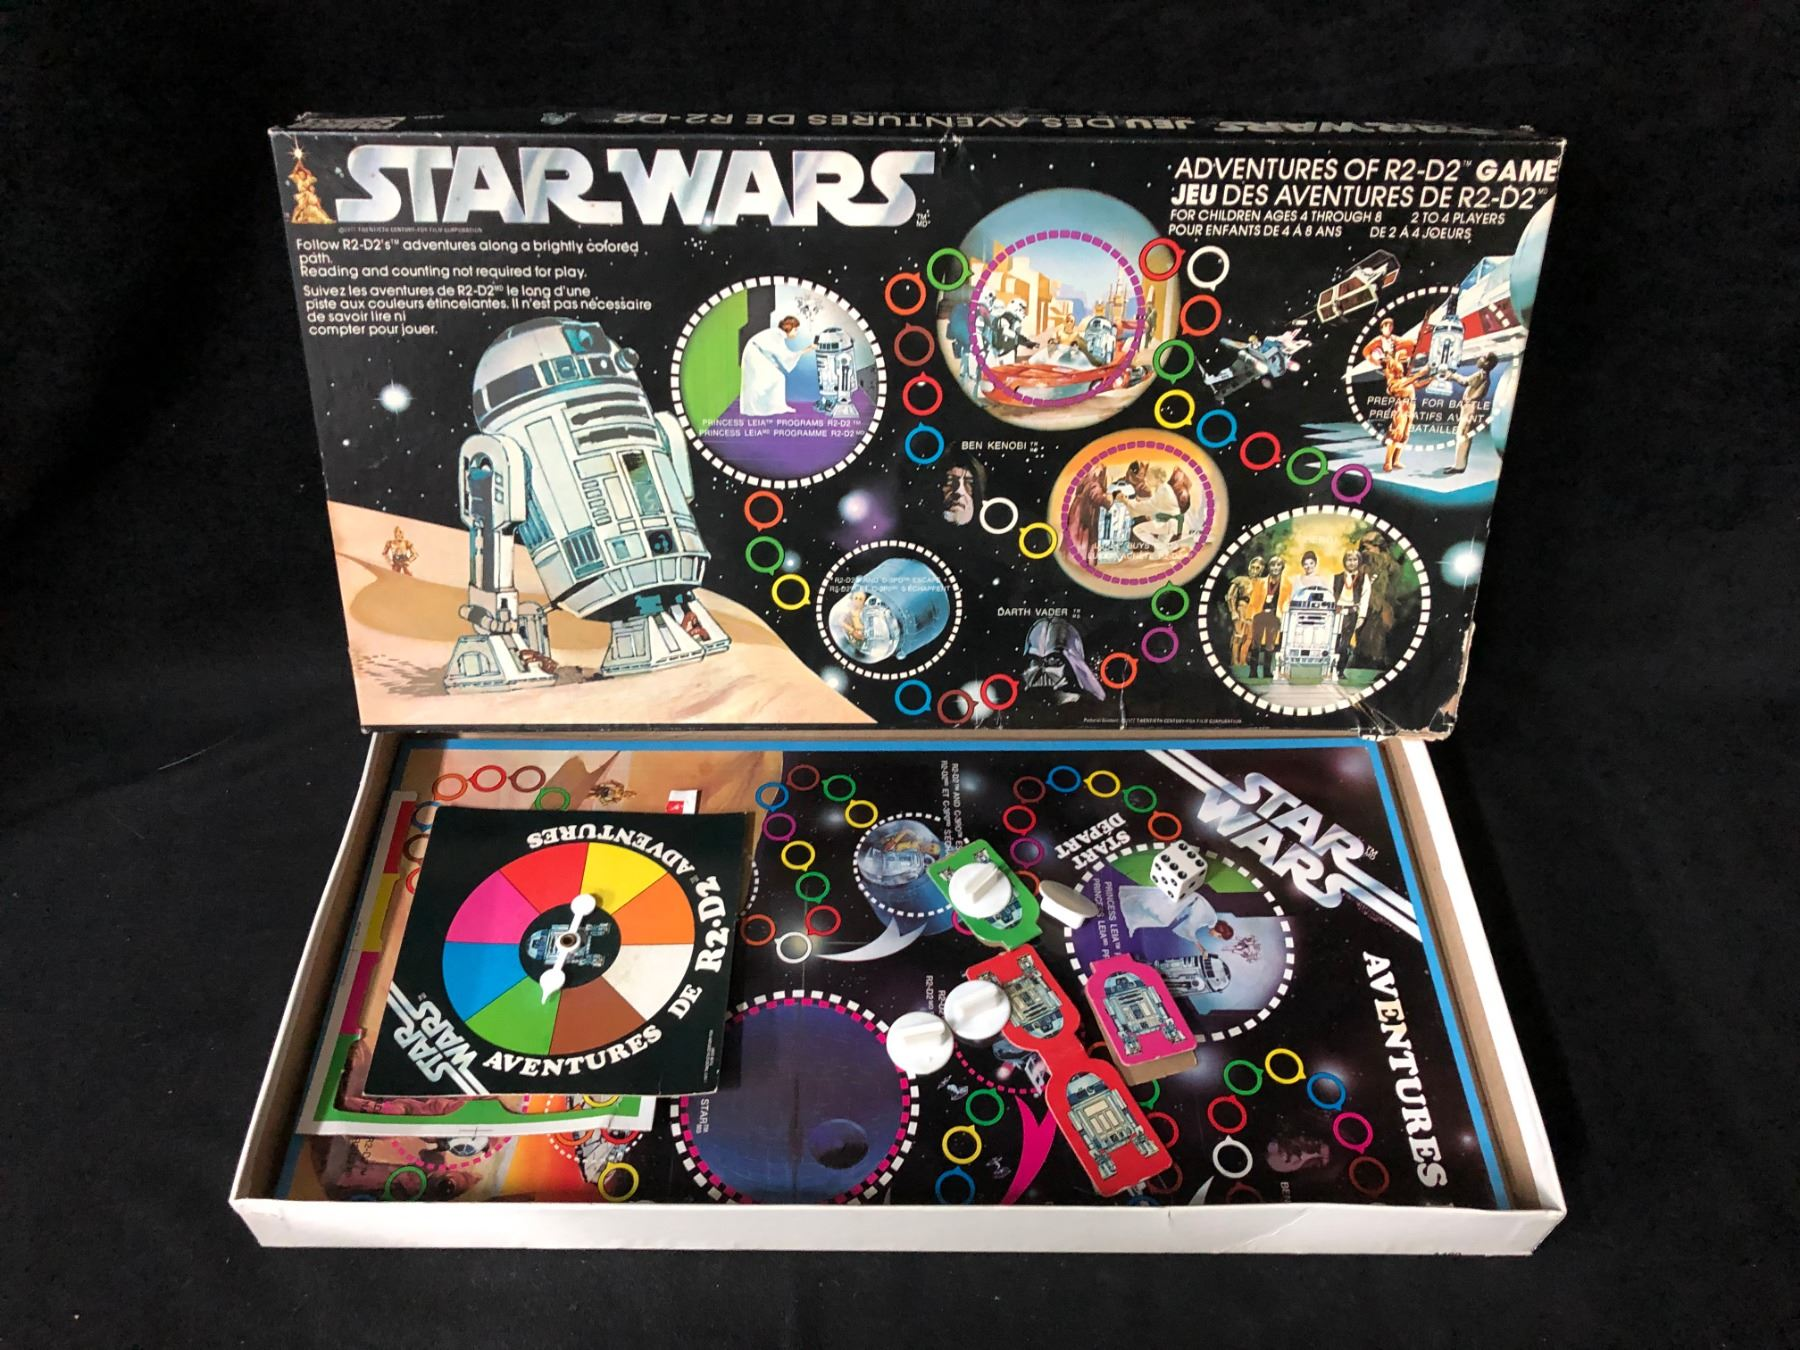 Vintage 1977 Star Wars Board Game Adventures of R2-D2